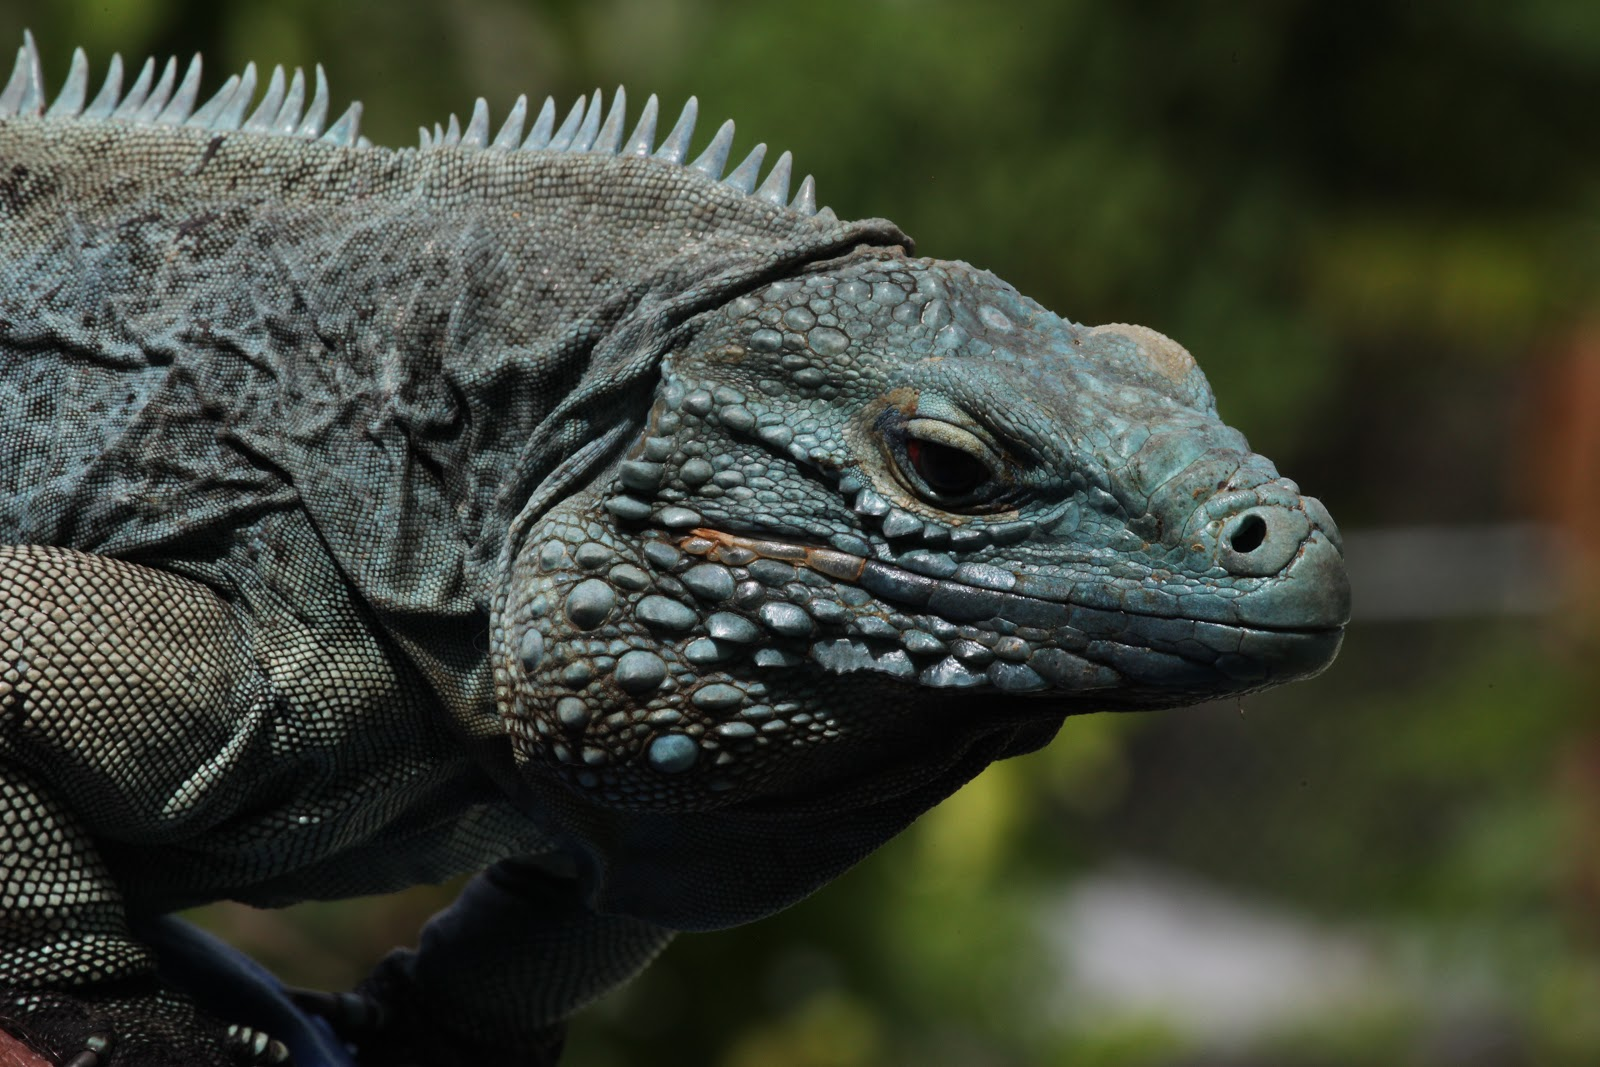 Dinosaur CSI Grand Cayman Blue Iguana A Success Story In Conservation